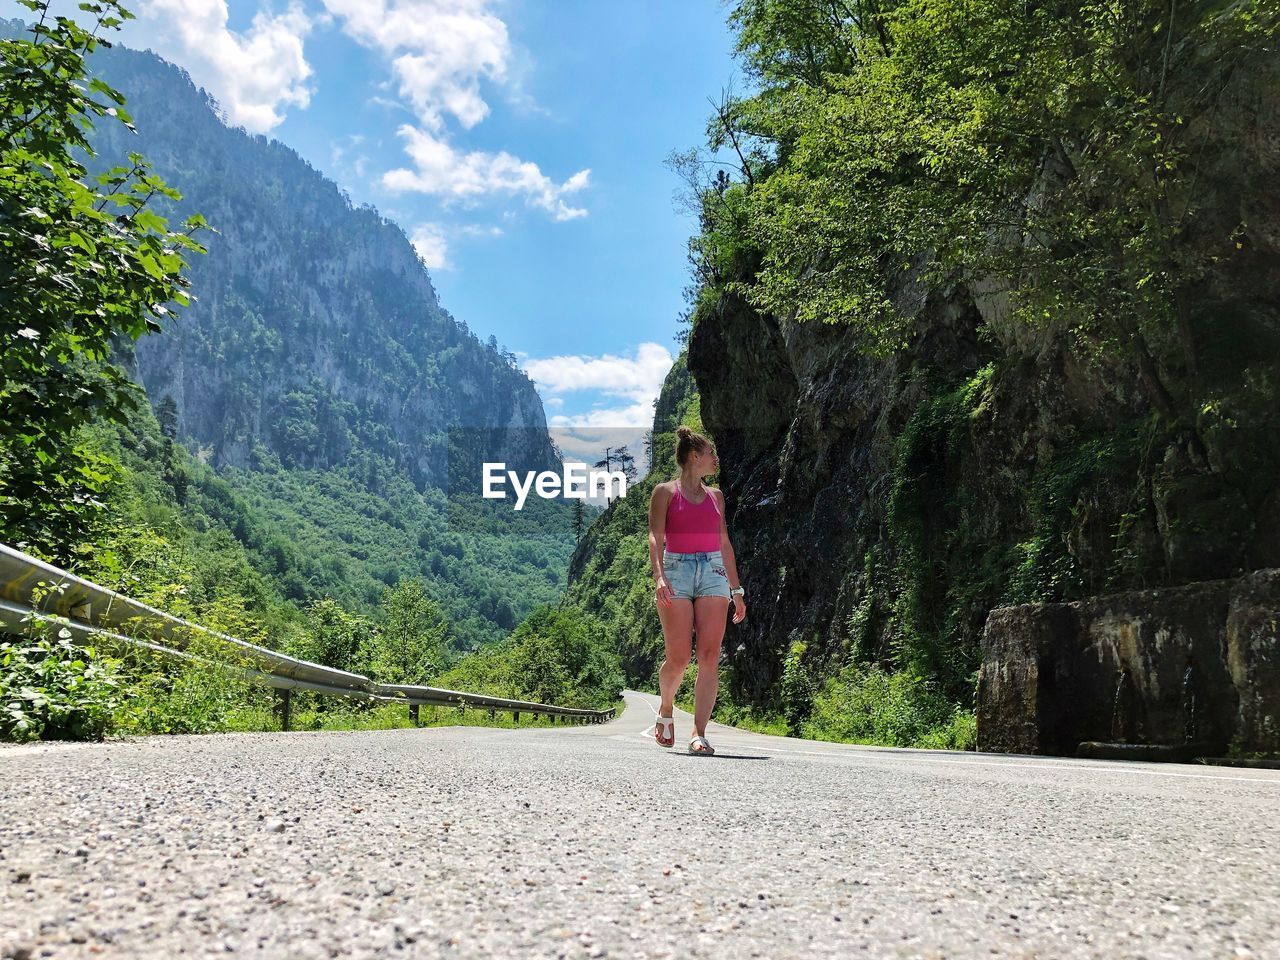 Woman walking on road amidst mountain against sky